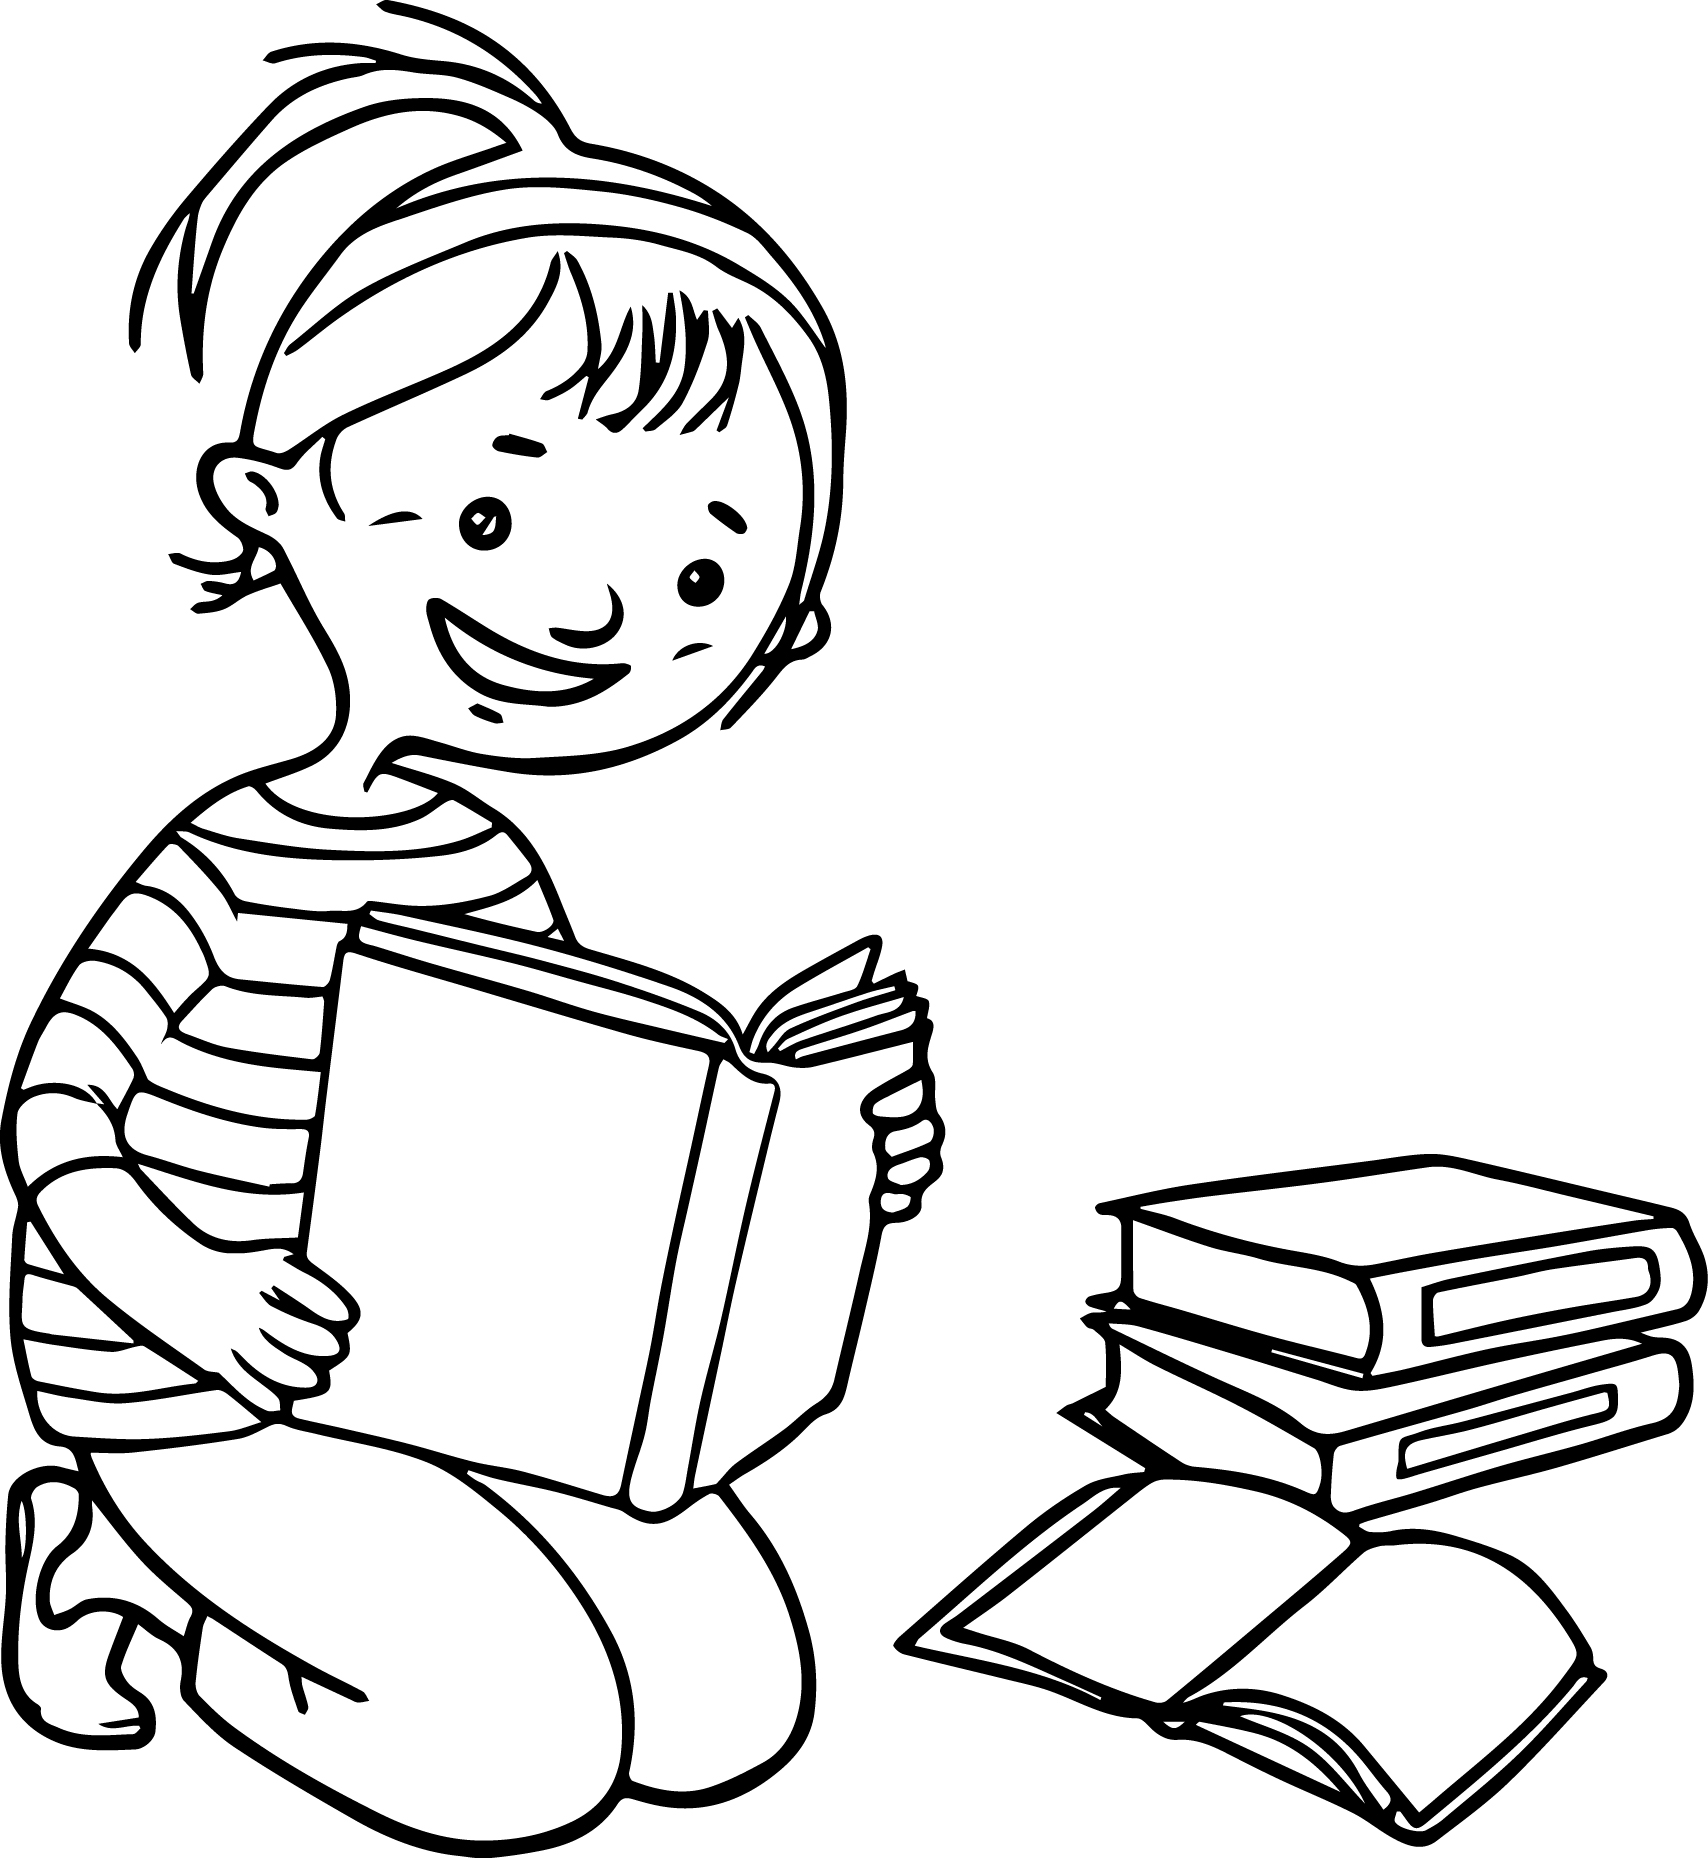 Funny Cartoon Pictures For Kids To Draw Coloring Page